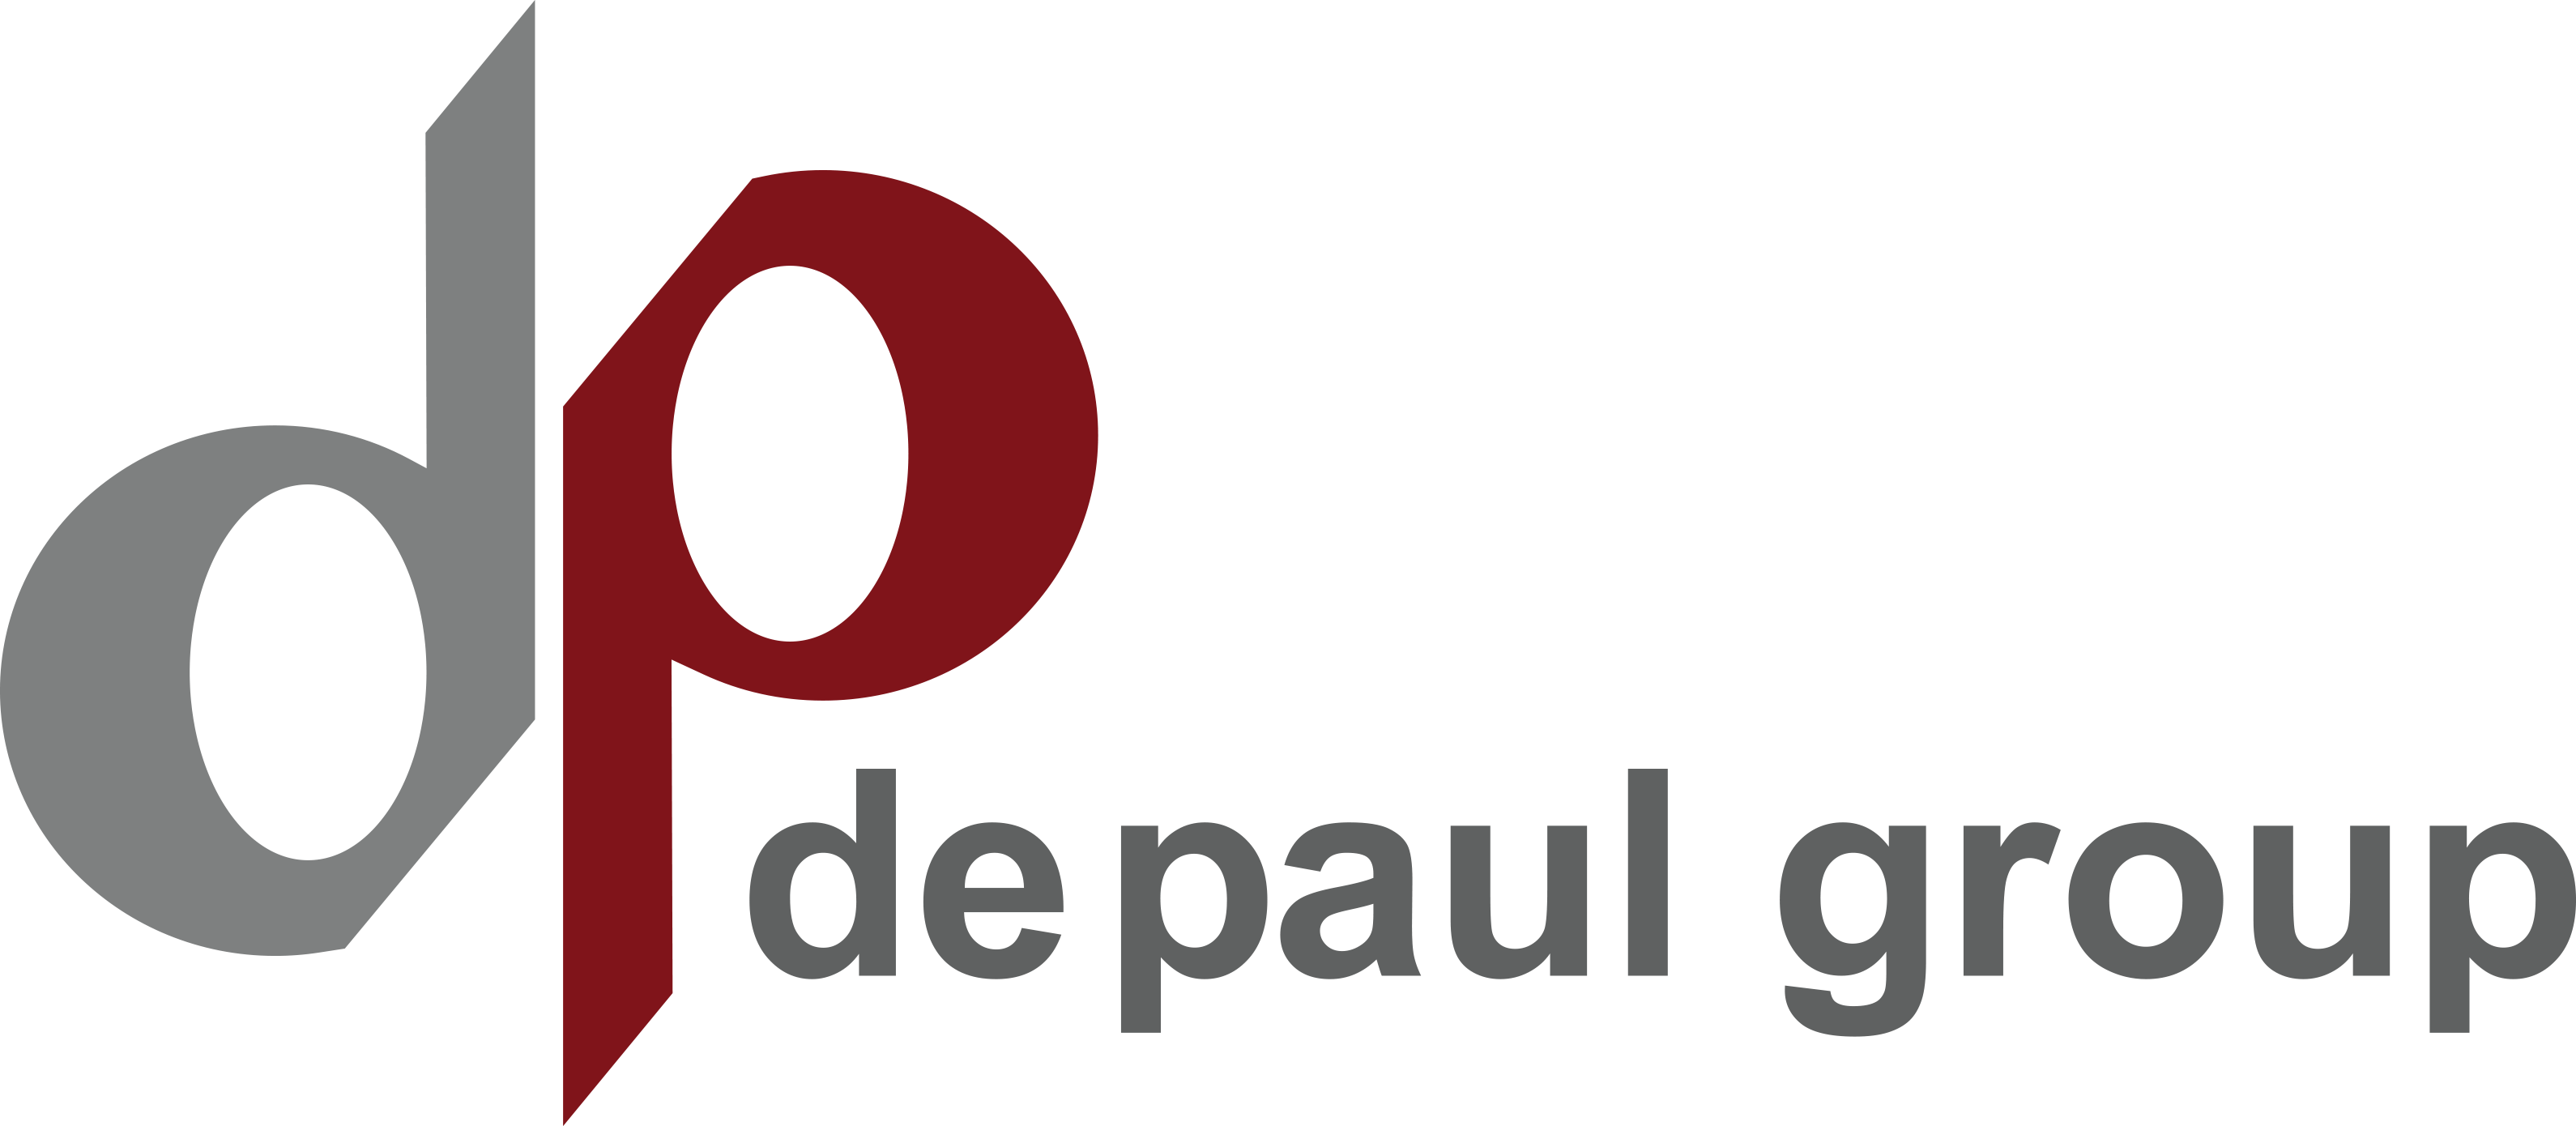 de paul group